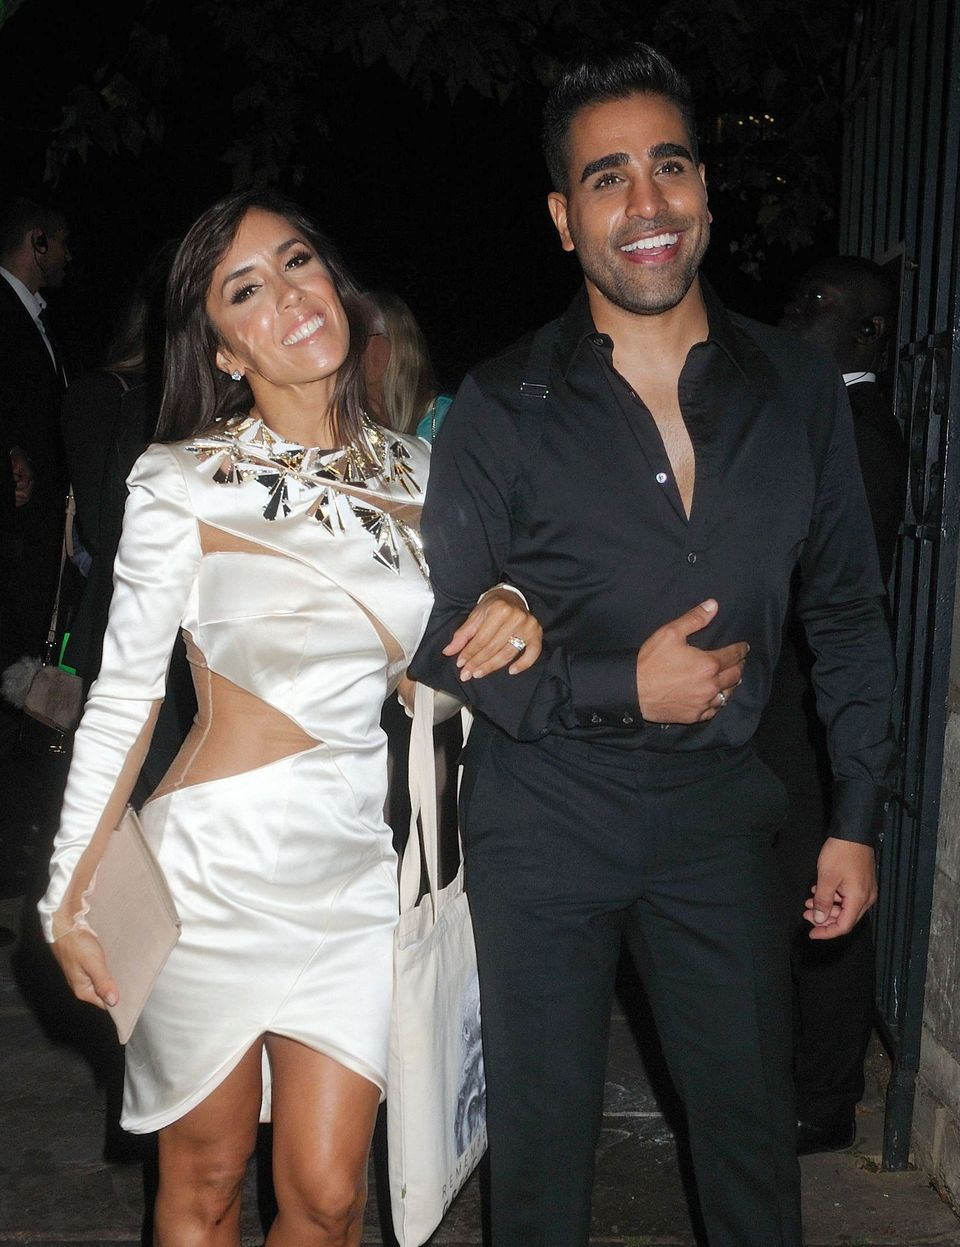 Ranj has remained close friends with Janette since the show